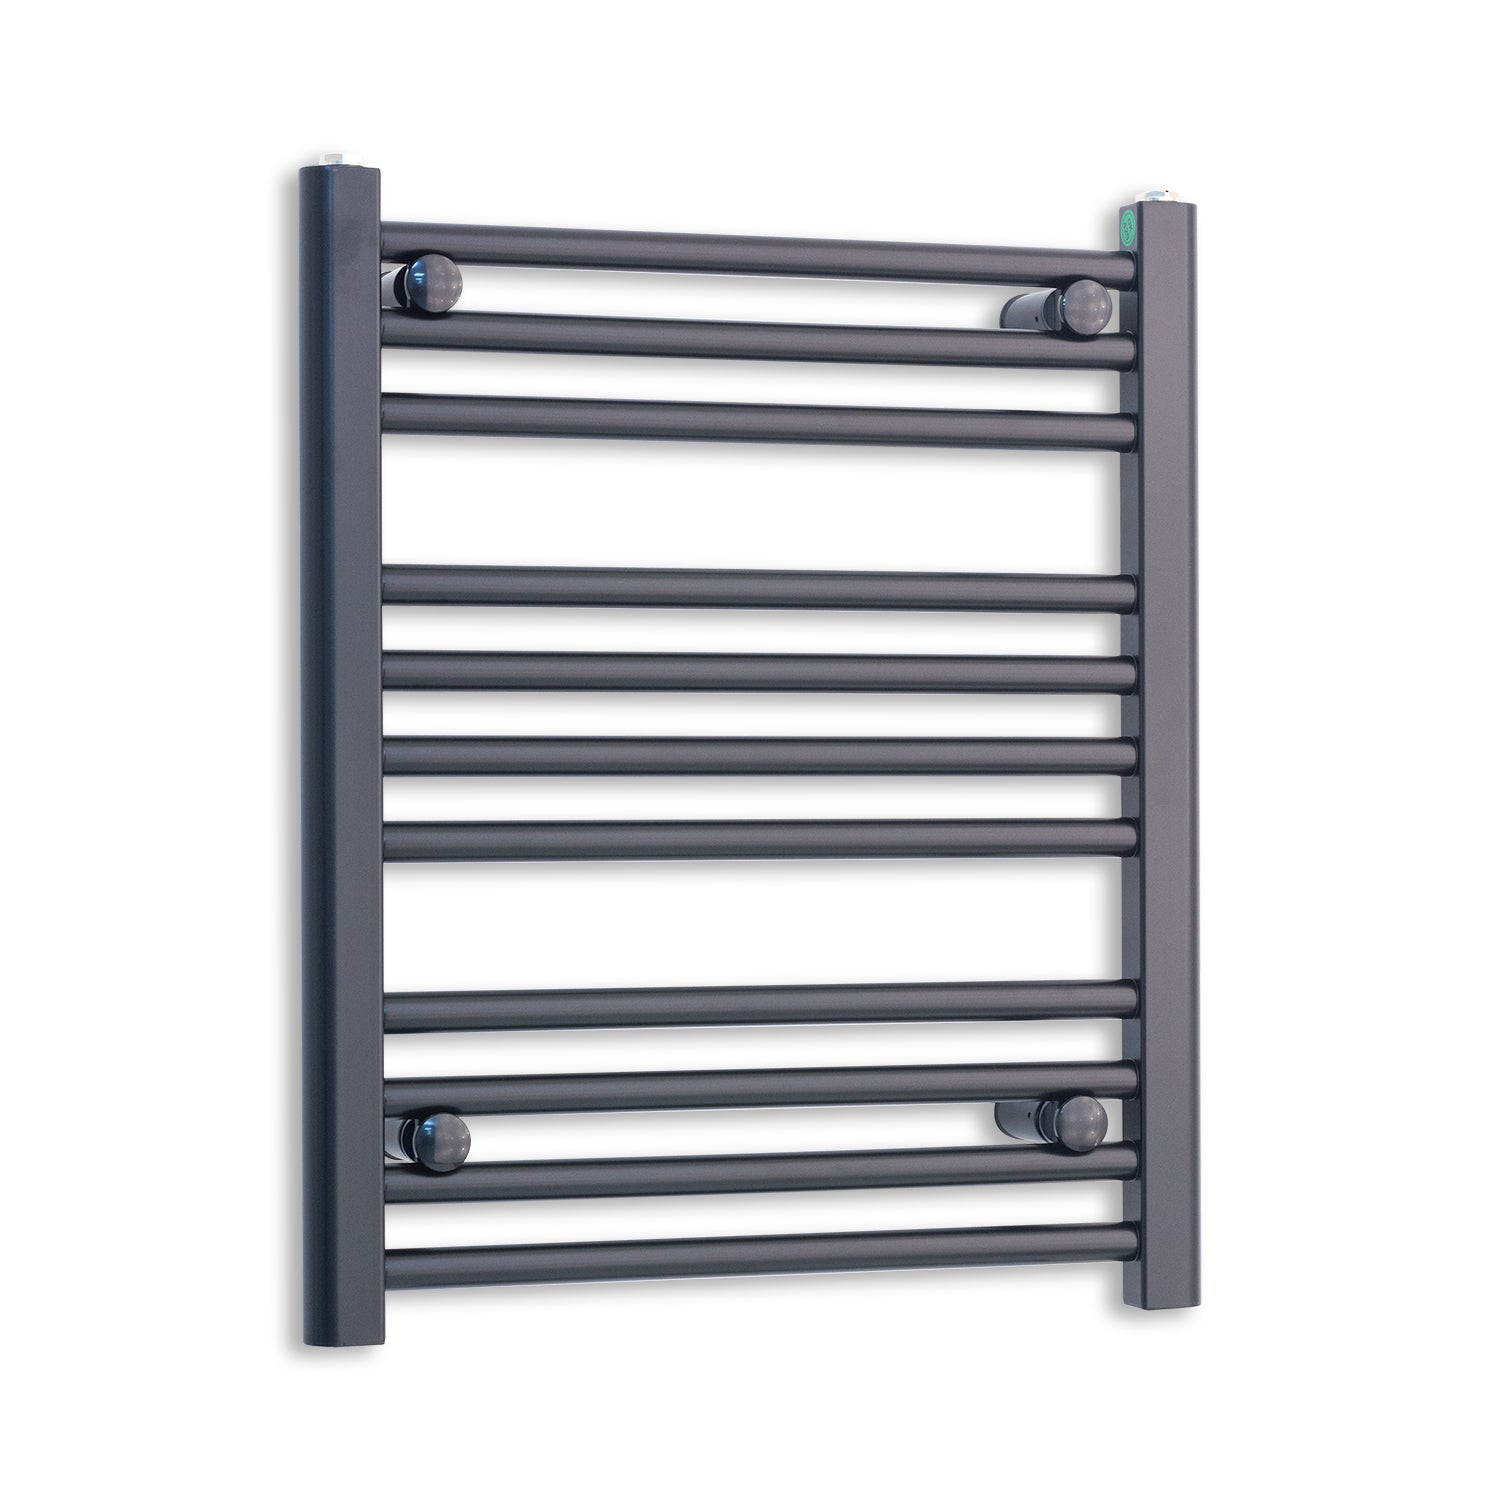 600mm Wide 600mm High Flat Black Heated Towel Rail Radiator,Towel Rail Only